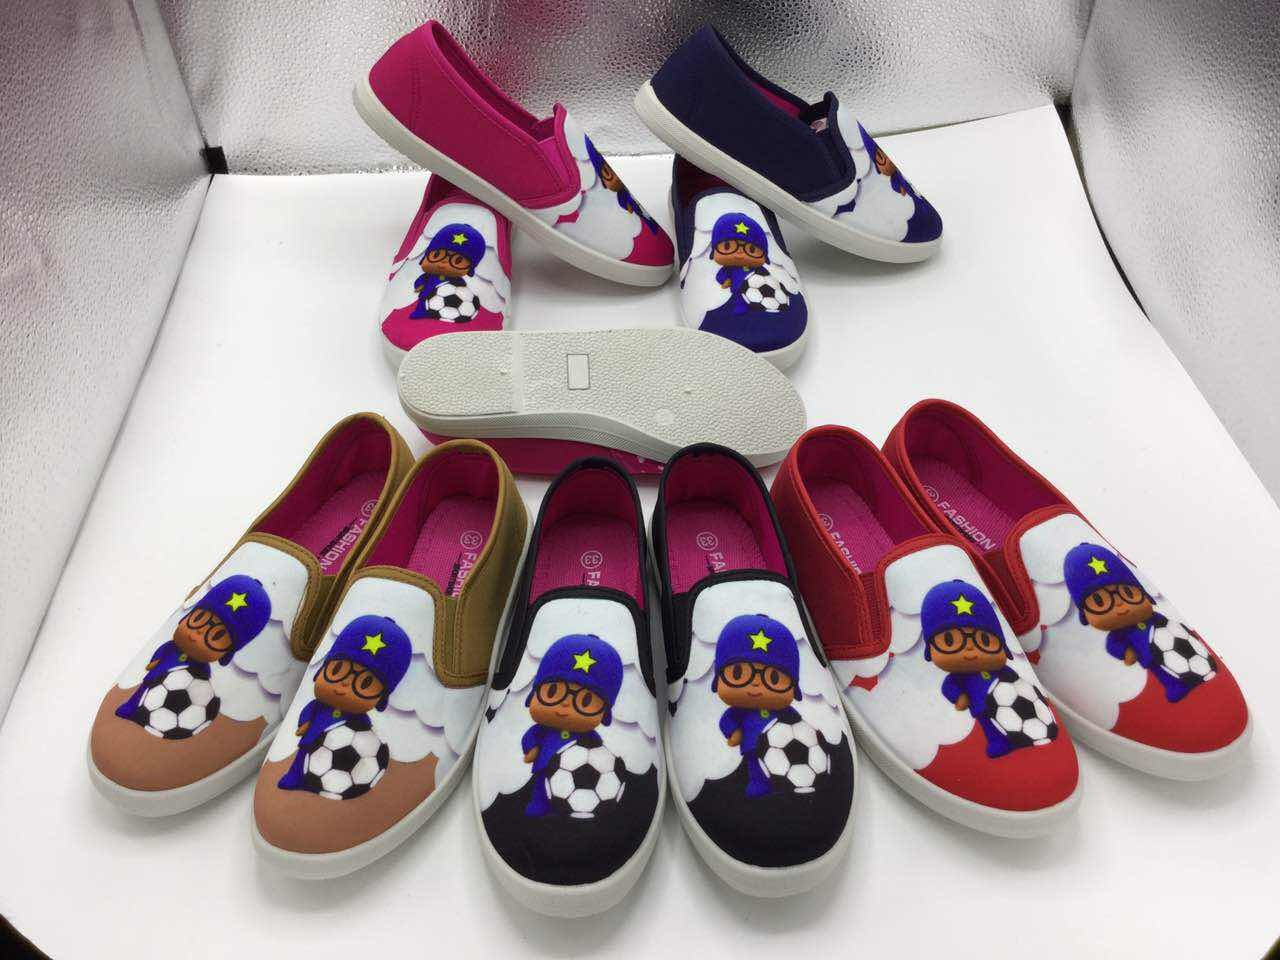 China Wholesale Child Casual Shoes Canvas Upper Injection Sole